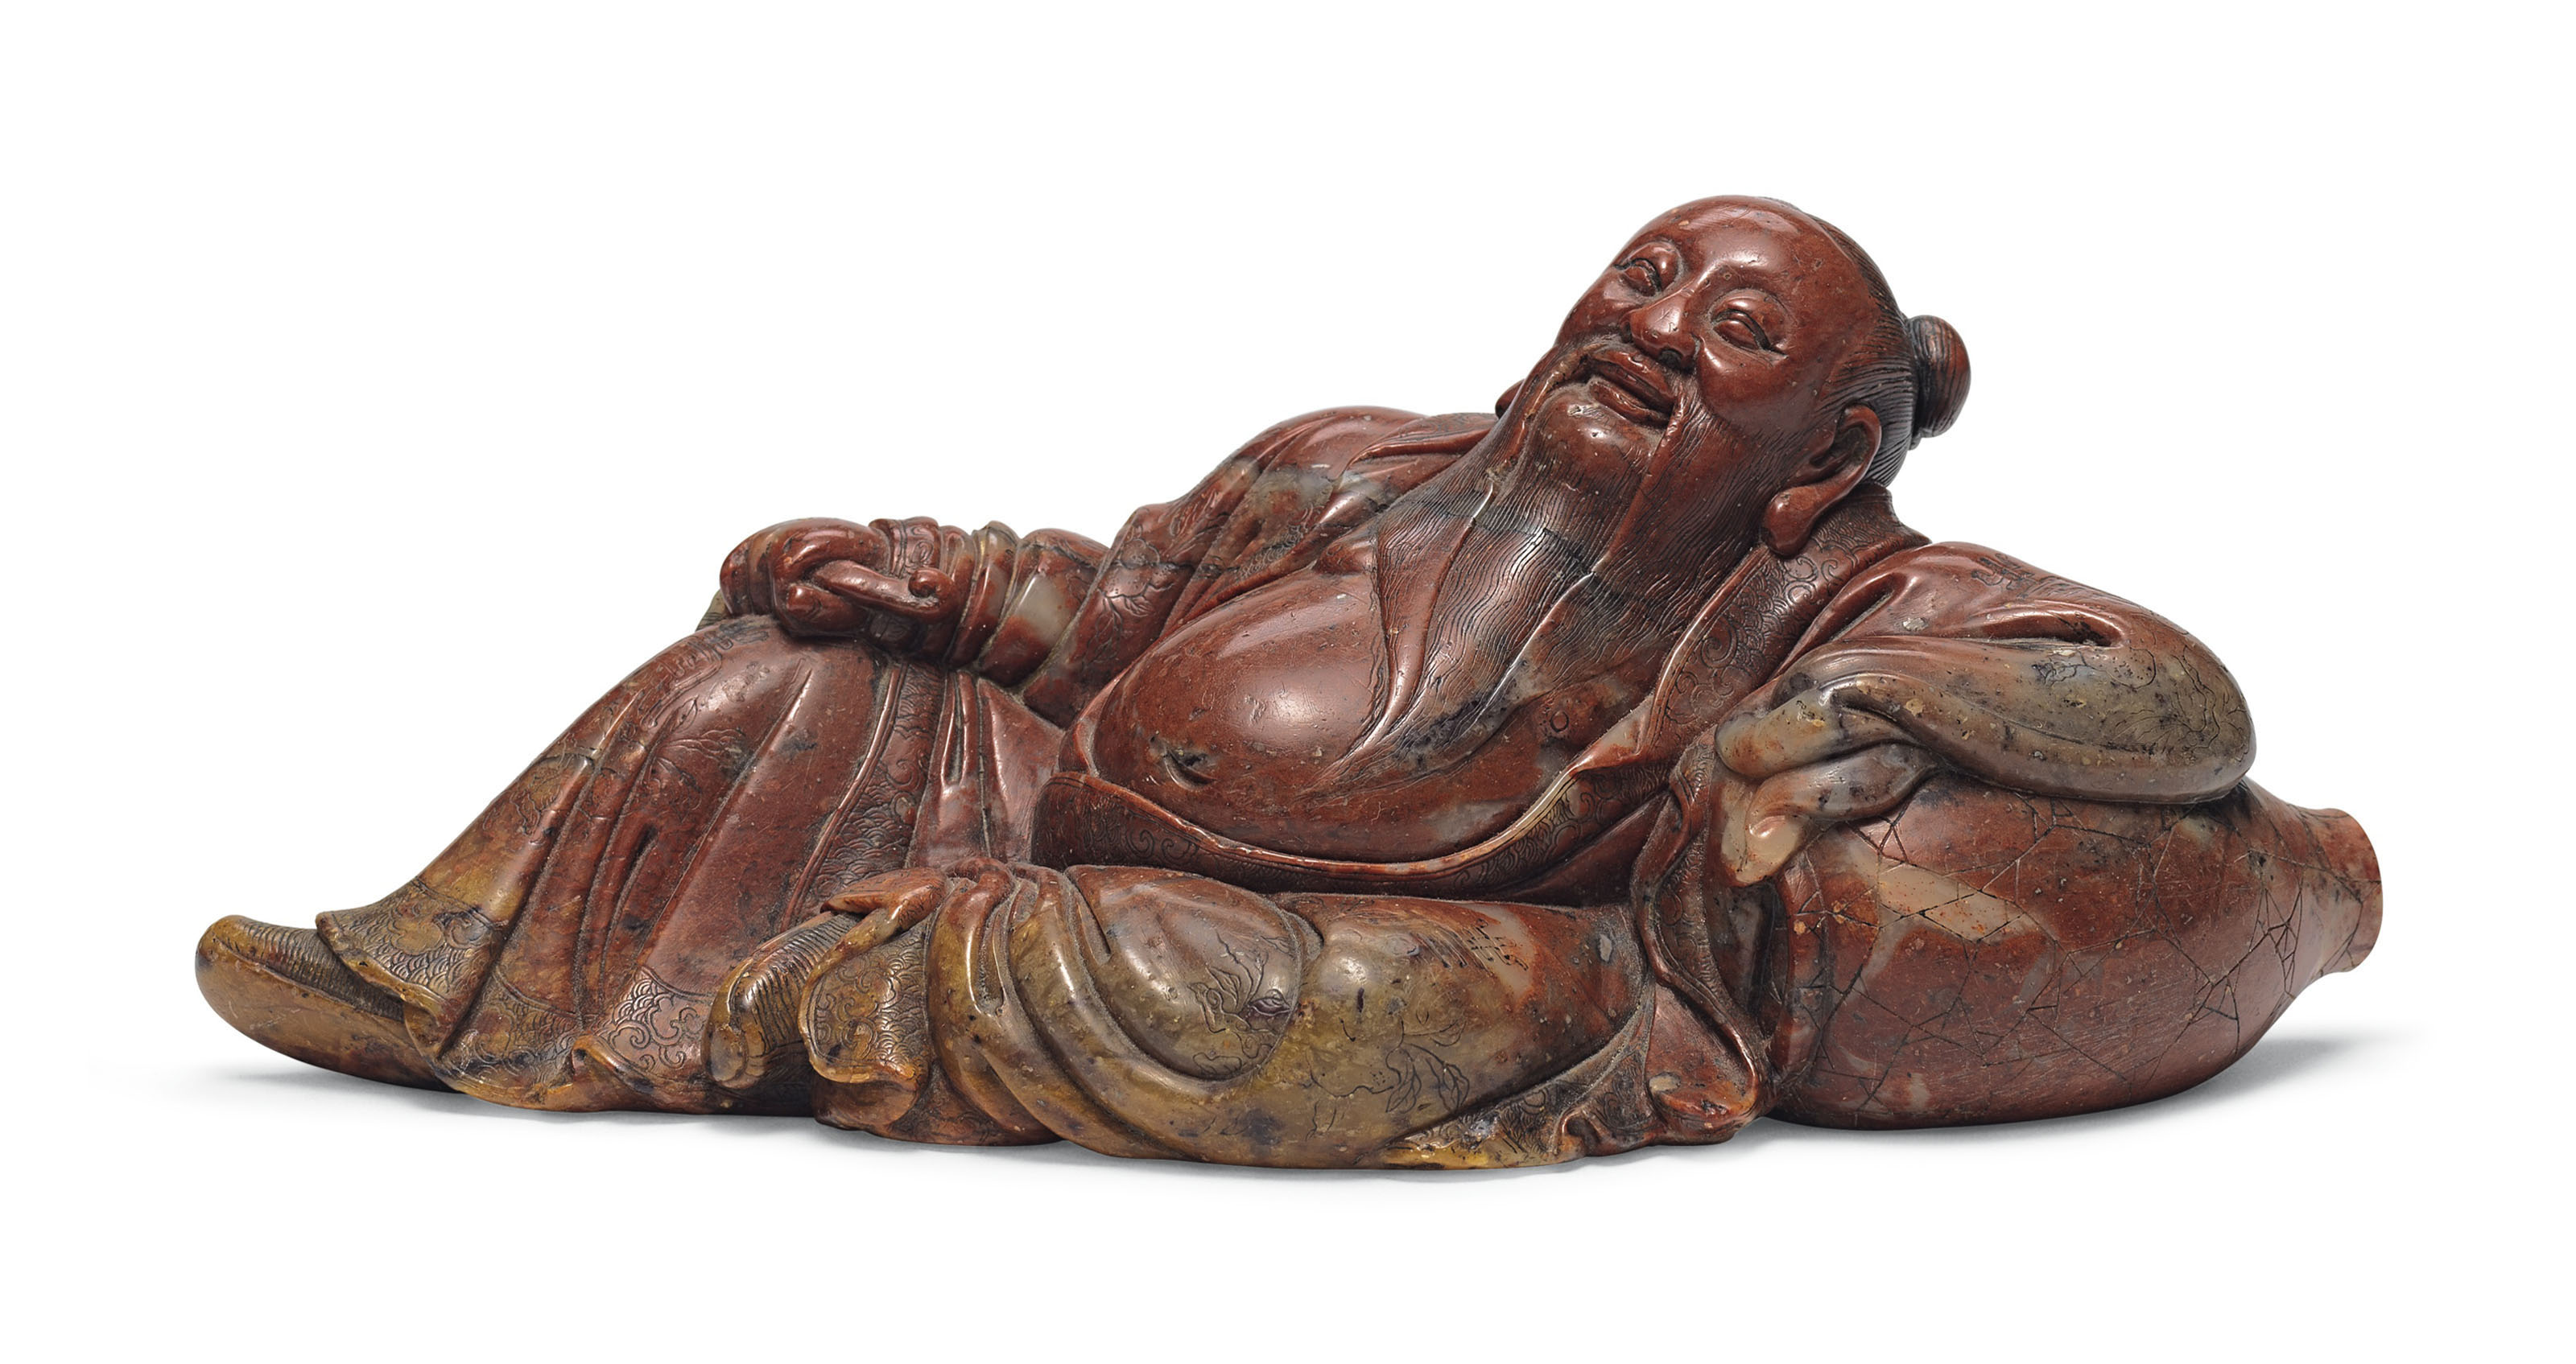 Logical Antique Figurine Hand Carved Chinese Walnut Shell Decorative Collectibles Other Decorative Collectibles